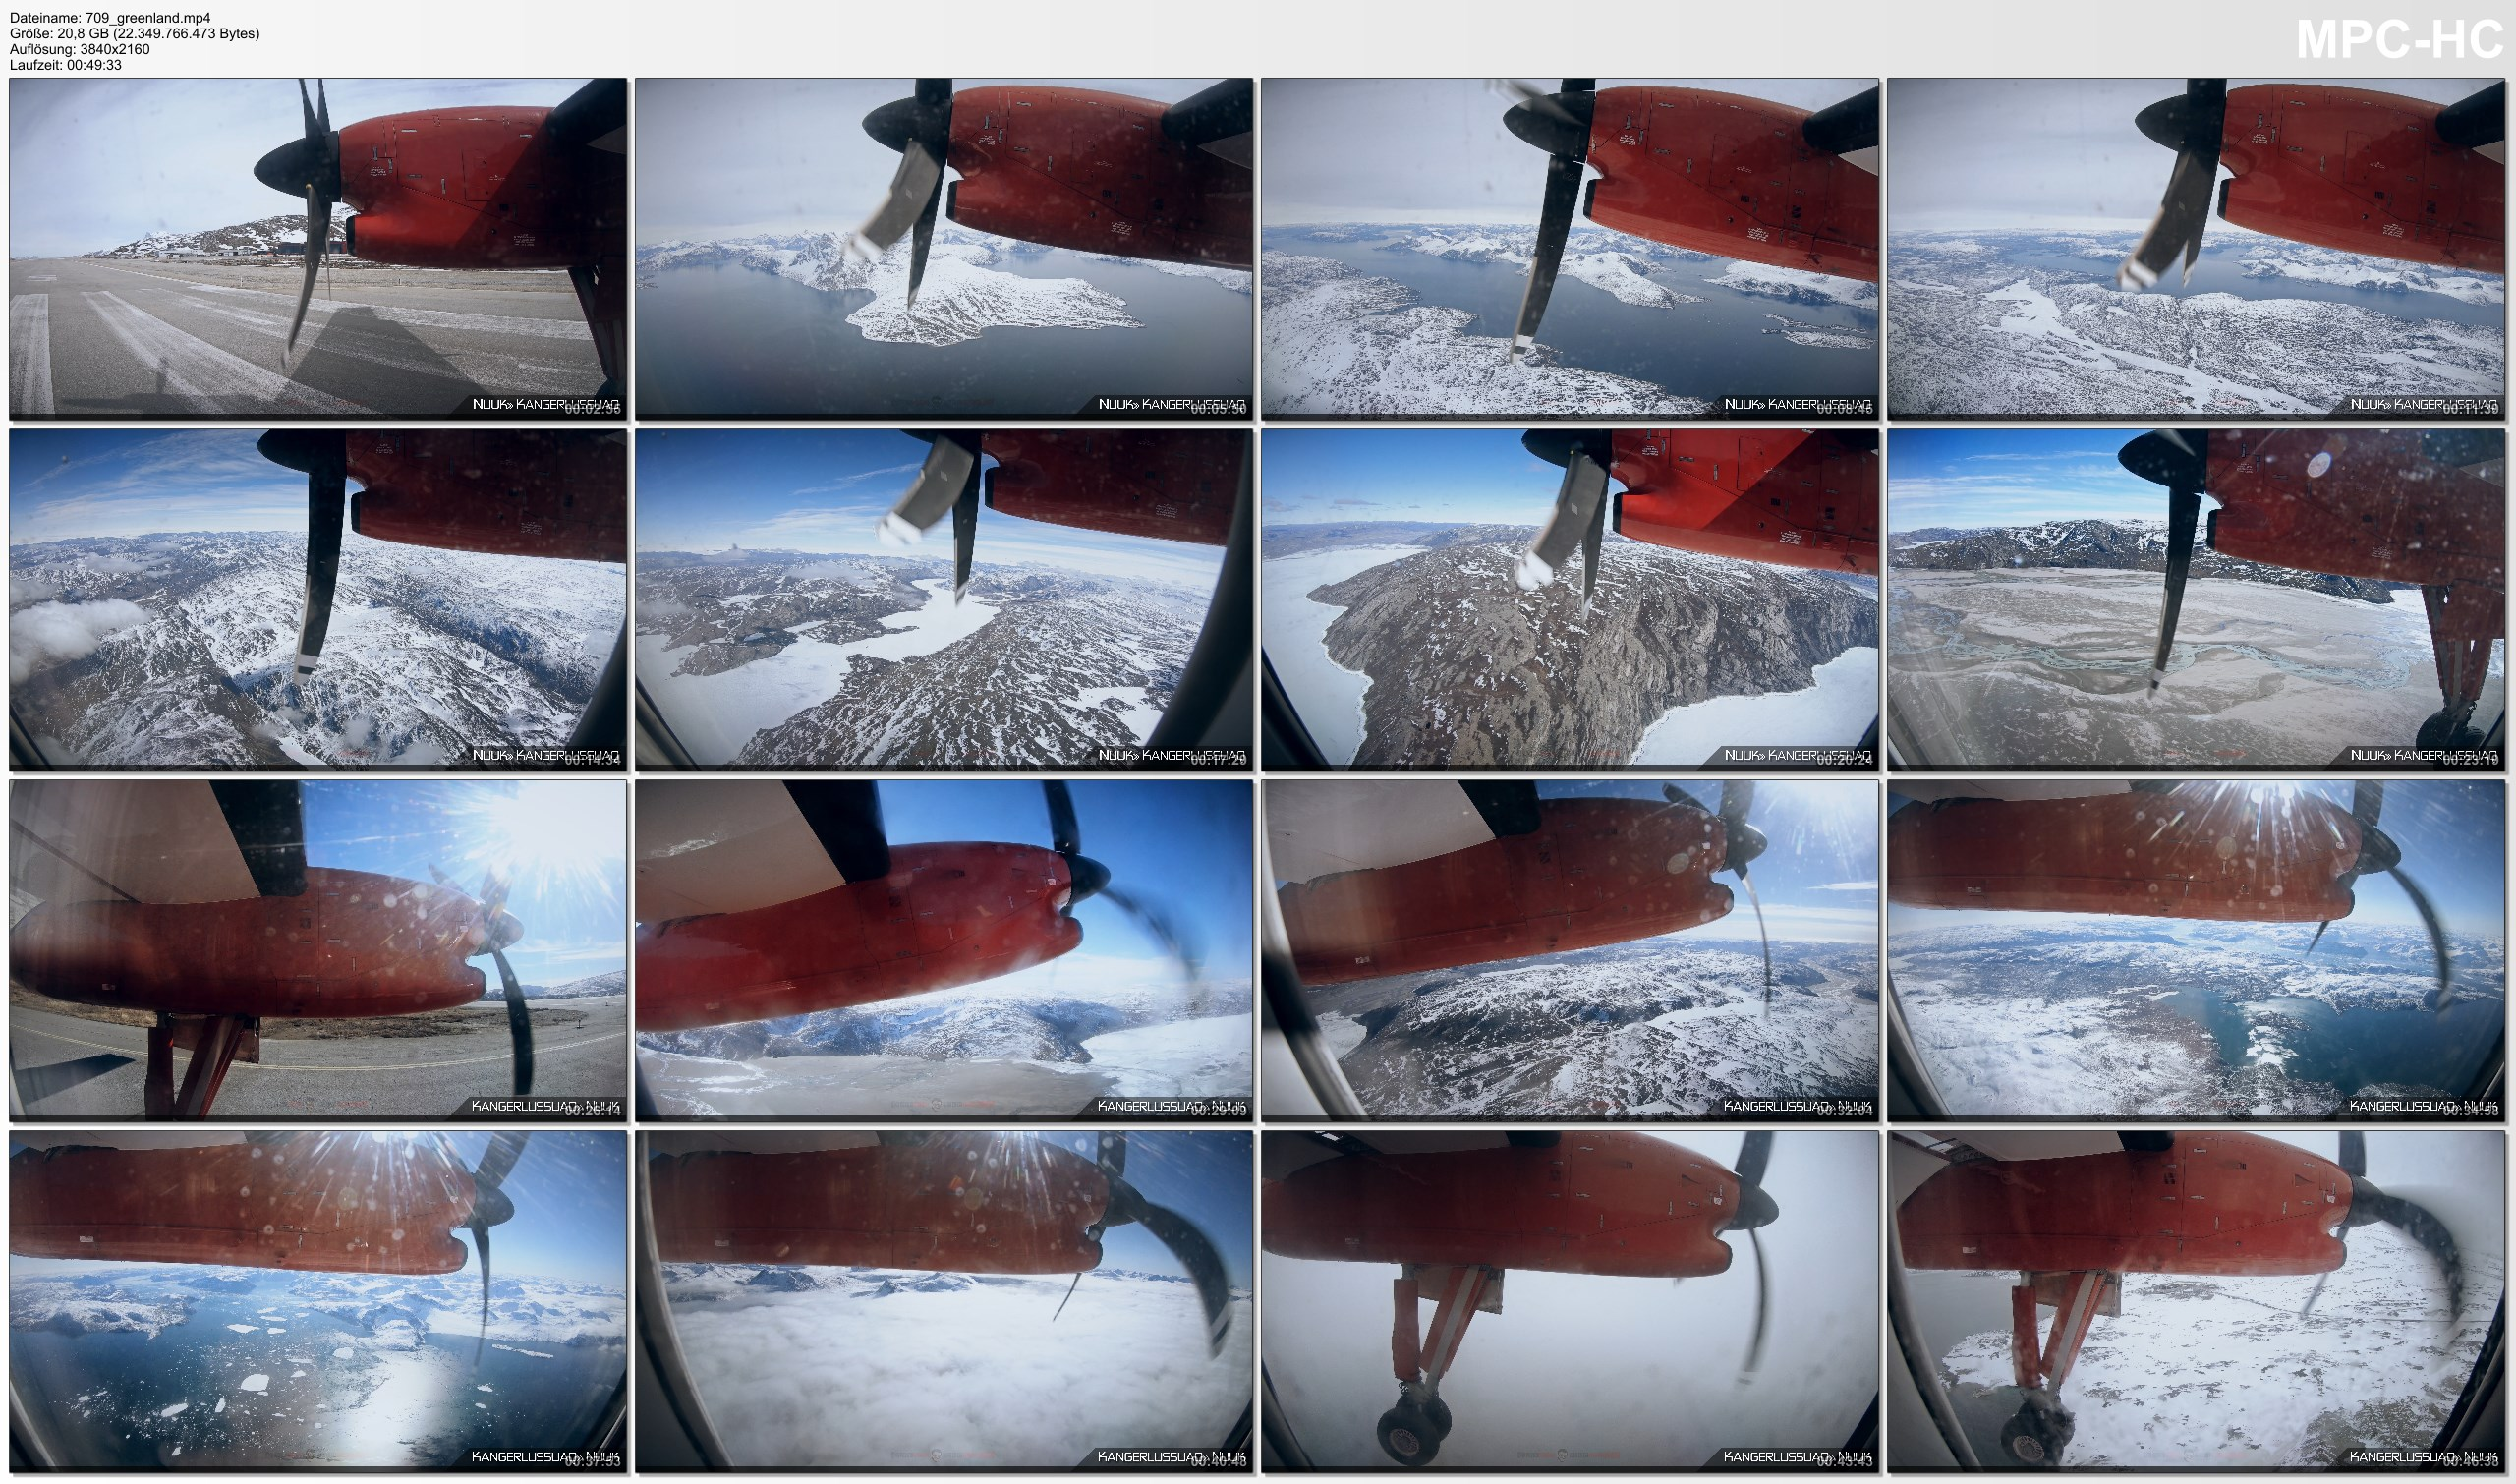 Pictures from Video 【4K】Flight Footage   Air Greenland   Return Trip   Nuuk to Kangerlussuaq   2020   Propeller Plane